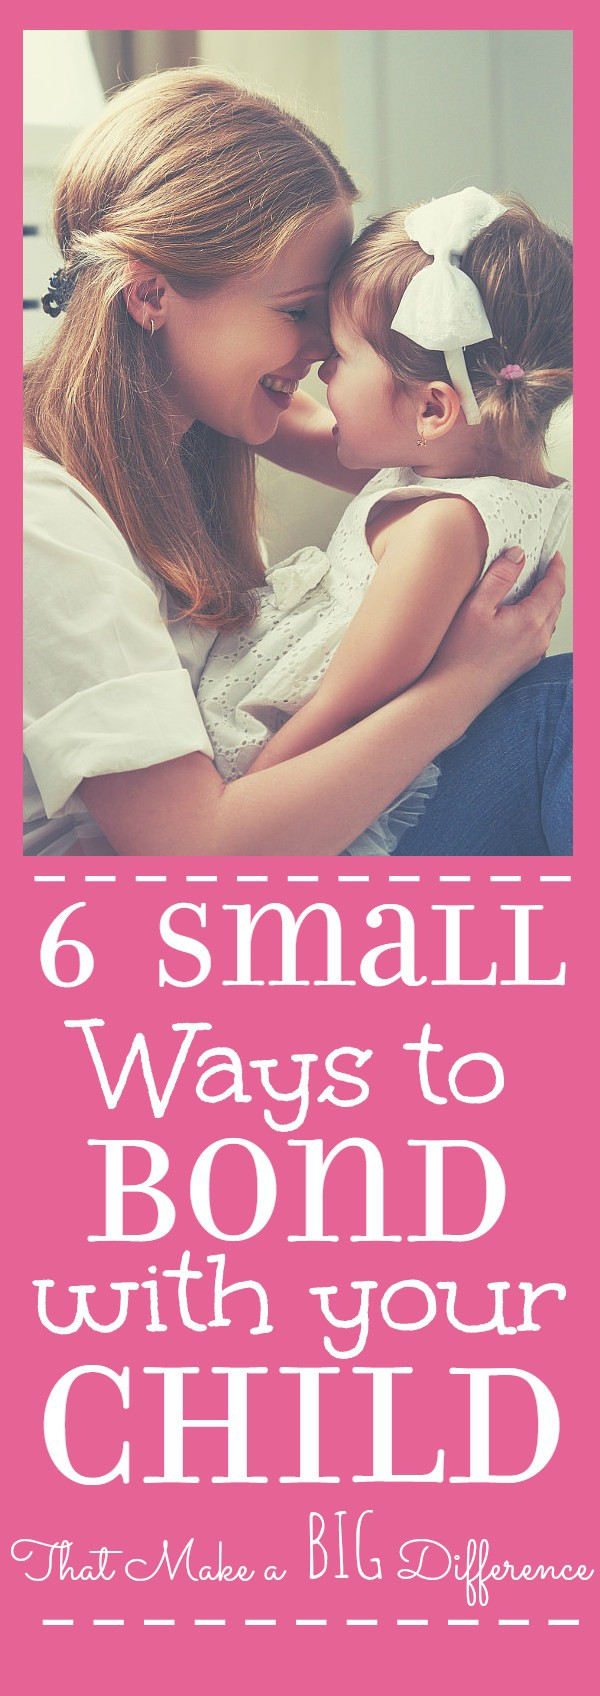 6 Small Ways to Bond With Your Child in a Big Way. Show your child you love, care, and appreciate them with these 6 simple ideas. | parenting